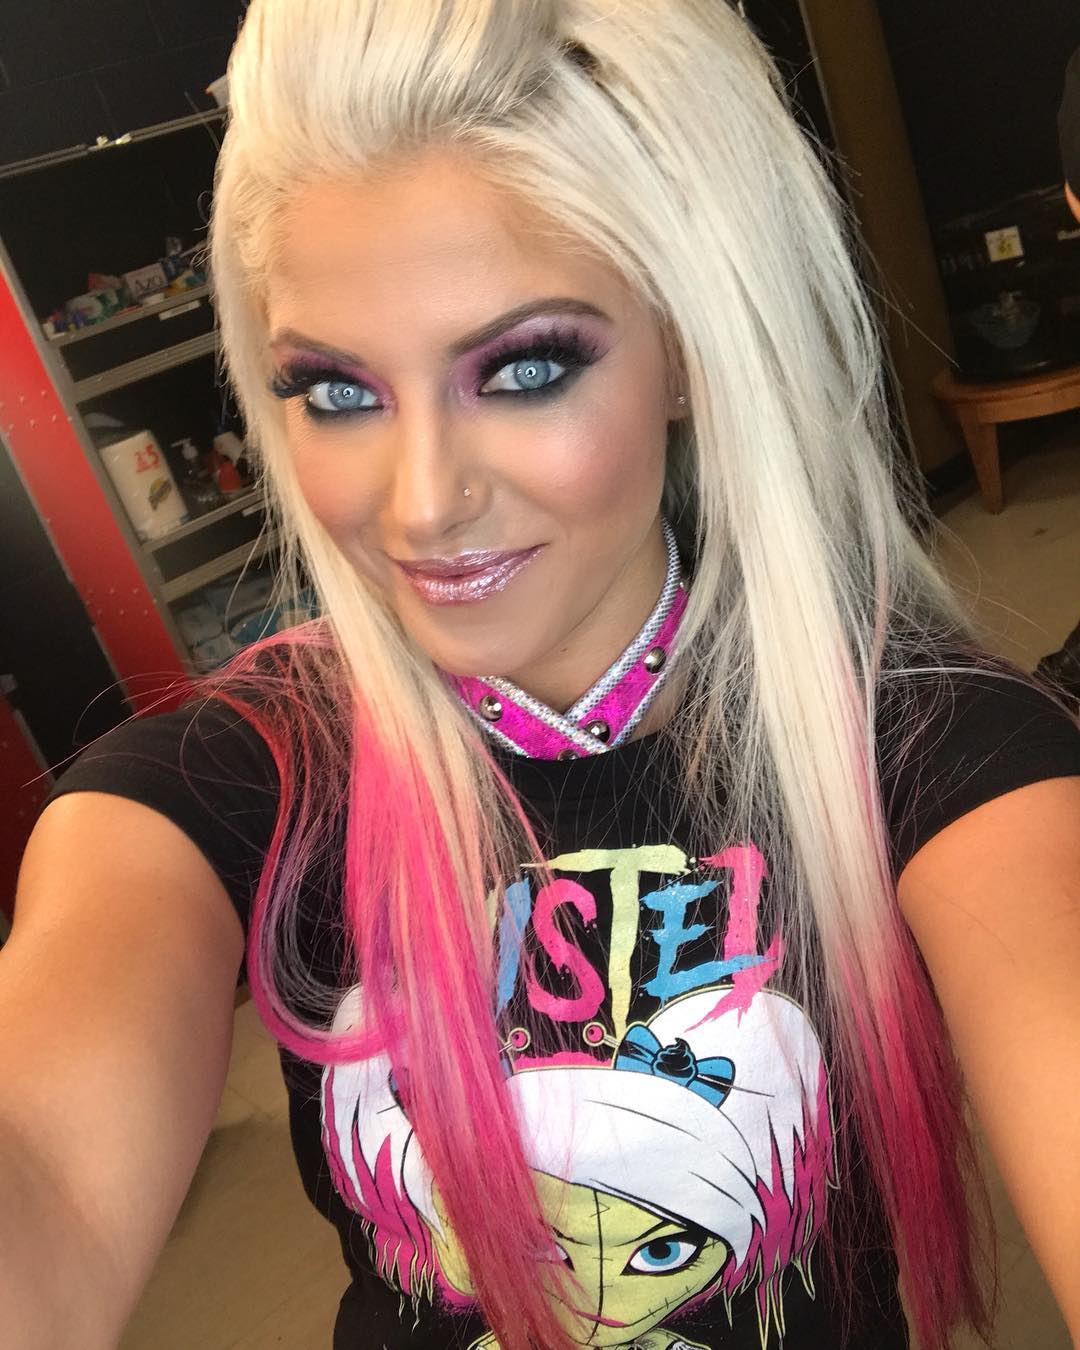 Alexa Bliss Porn alexa bliss nude - 1 pictures: rating 8.51/10